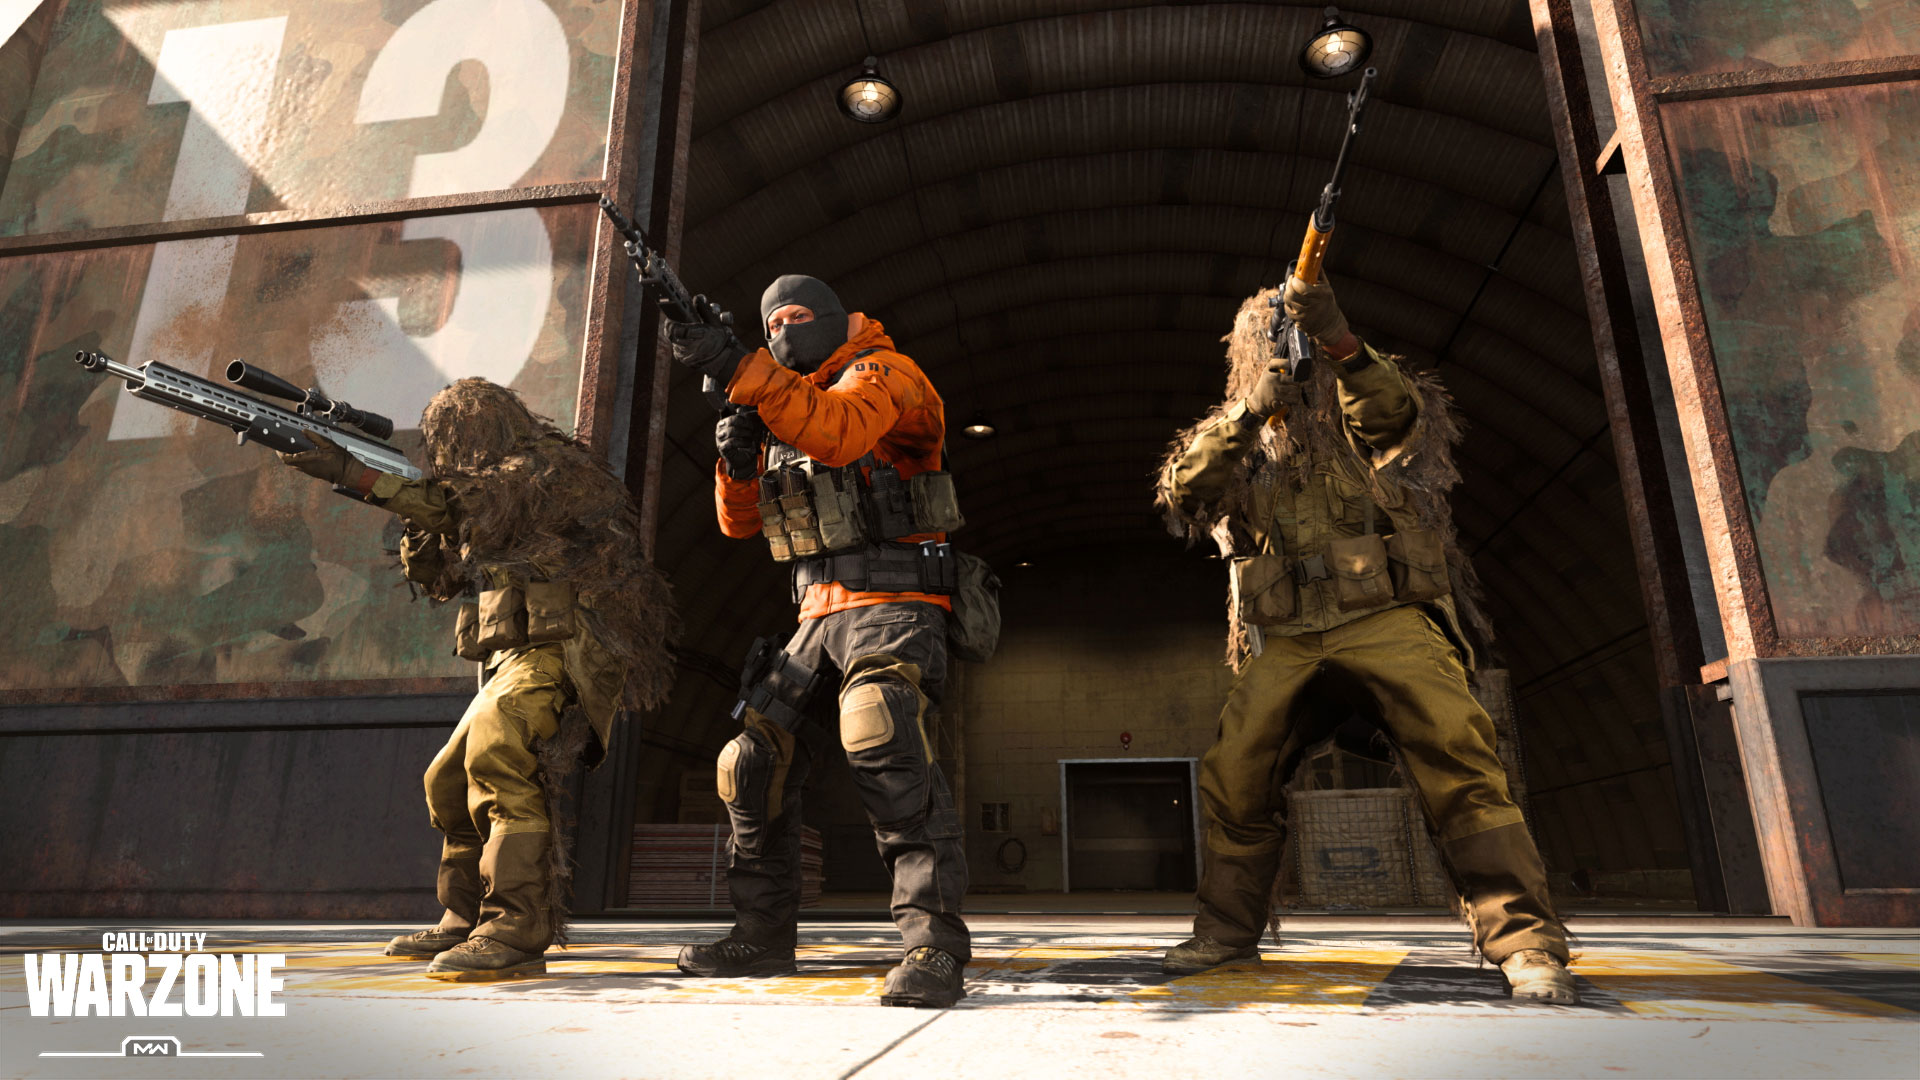 Call Of Duty Warzone Video Looks Behind The Scenes Shacknews